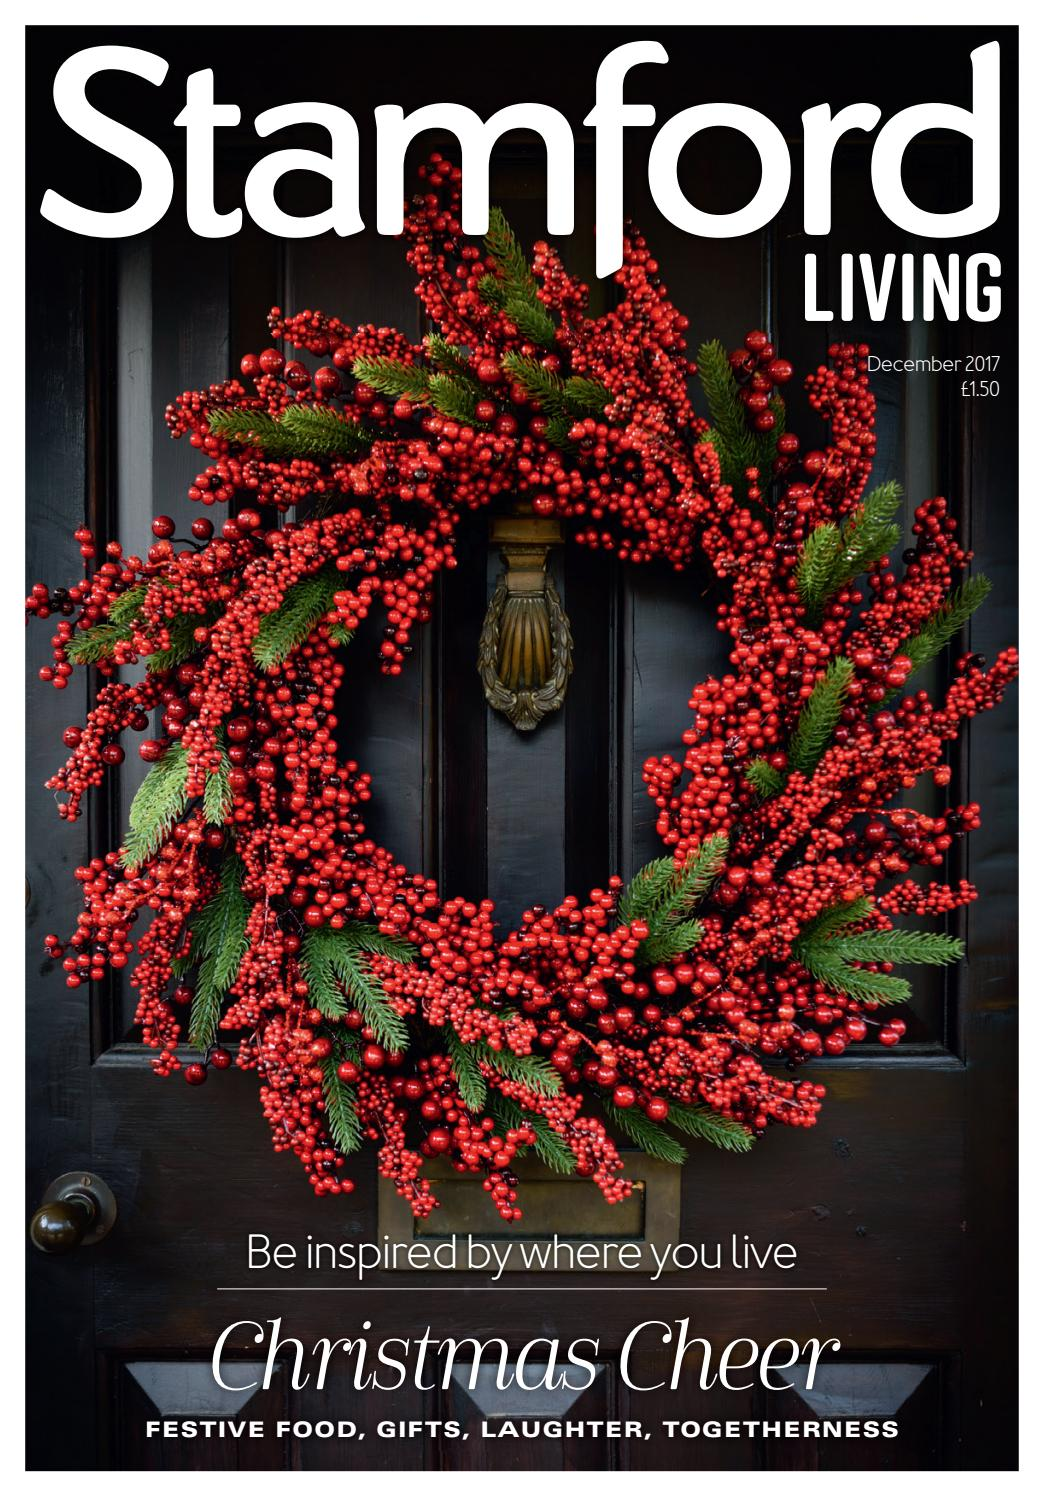 Stamford Living December 2017 by Best Local Living - issuu